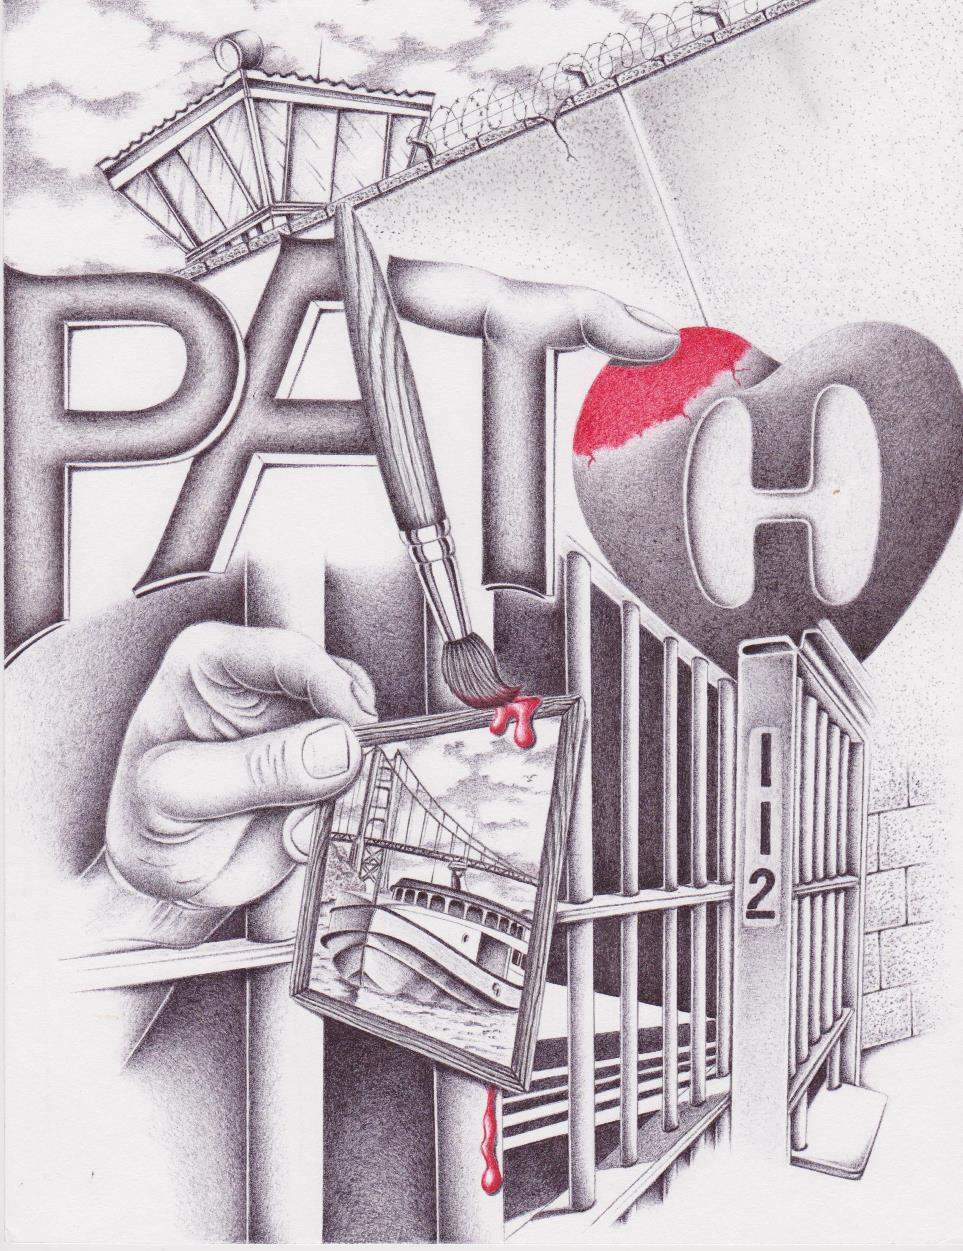 P.A.T.H. Logo Artwork drawing by Oscar Barrascout 001a.jpg